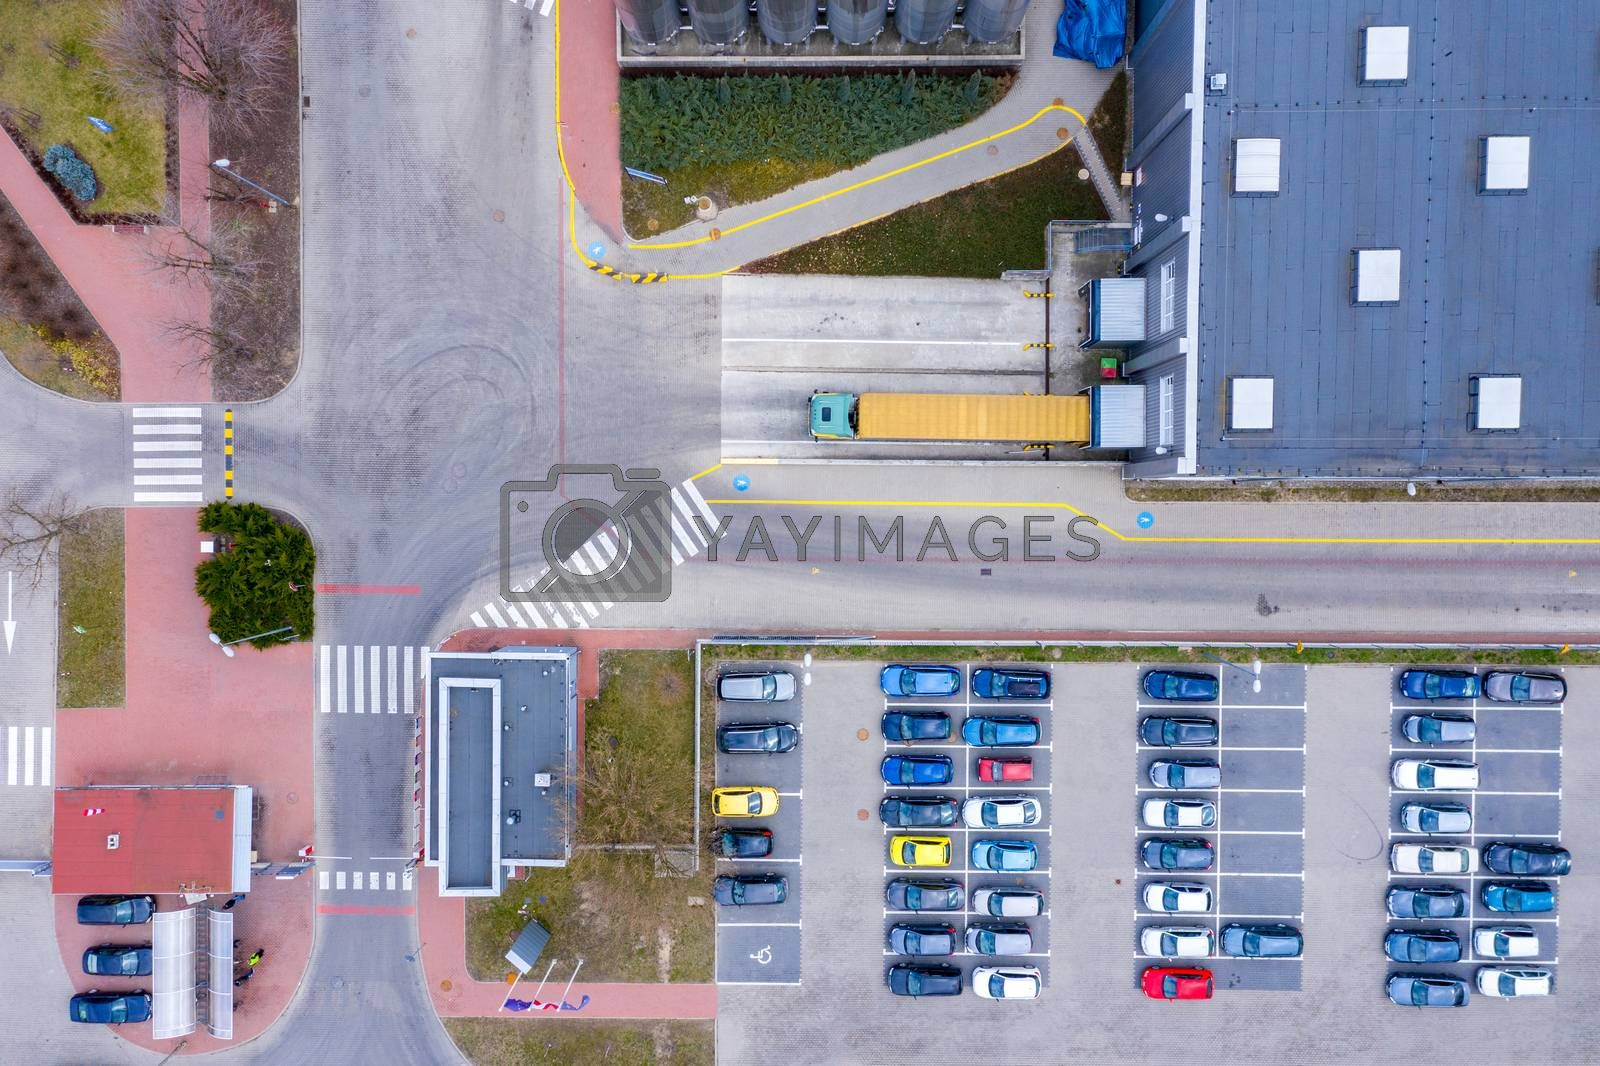 Royalty free image of Aerial Top View of Industrial Warehouse/ Storage Building/ Loadi by jackald